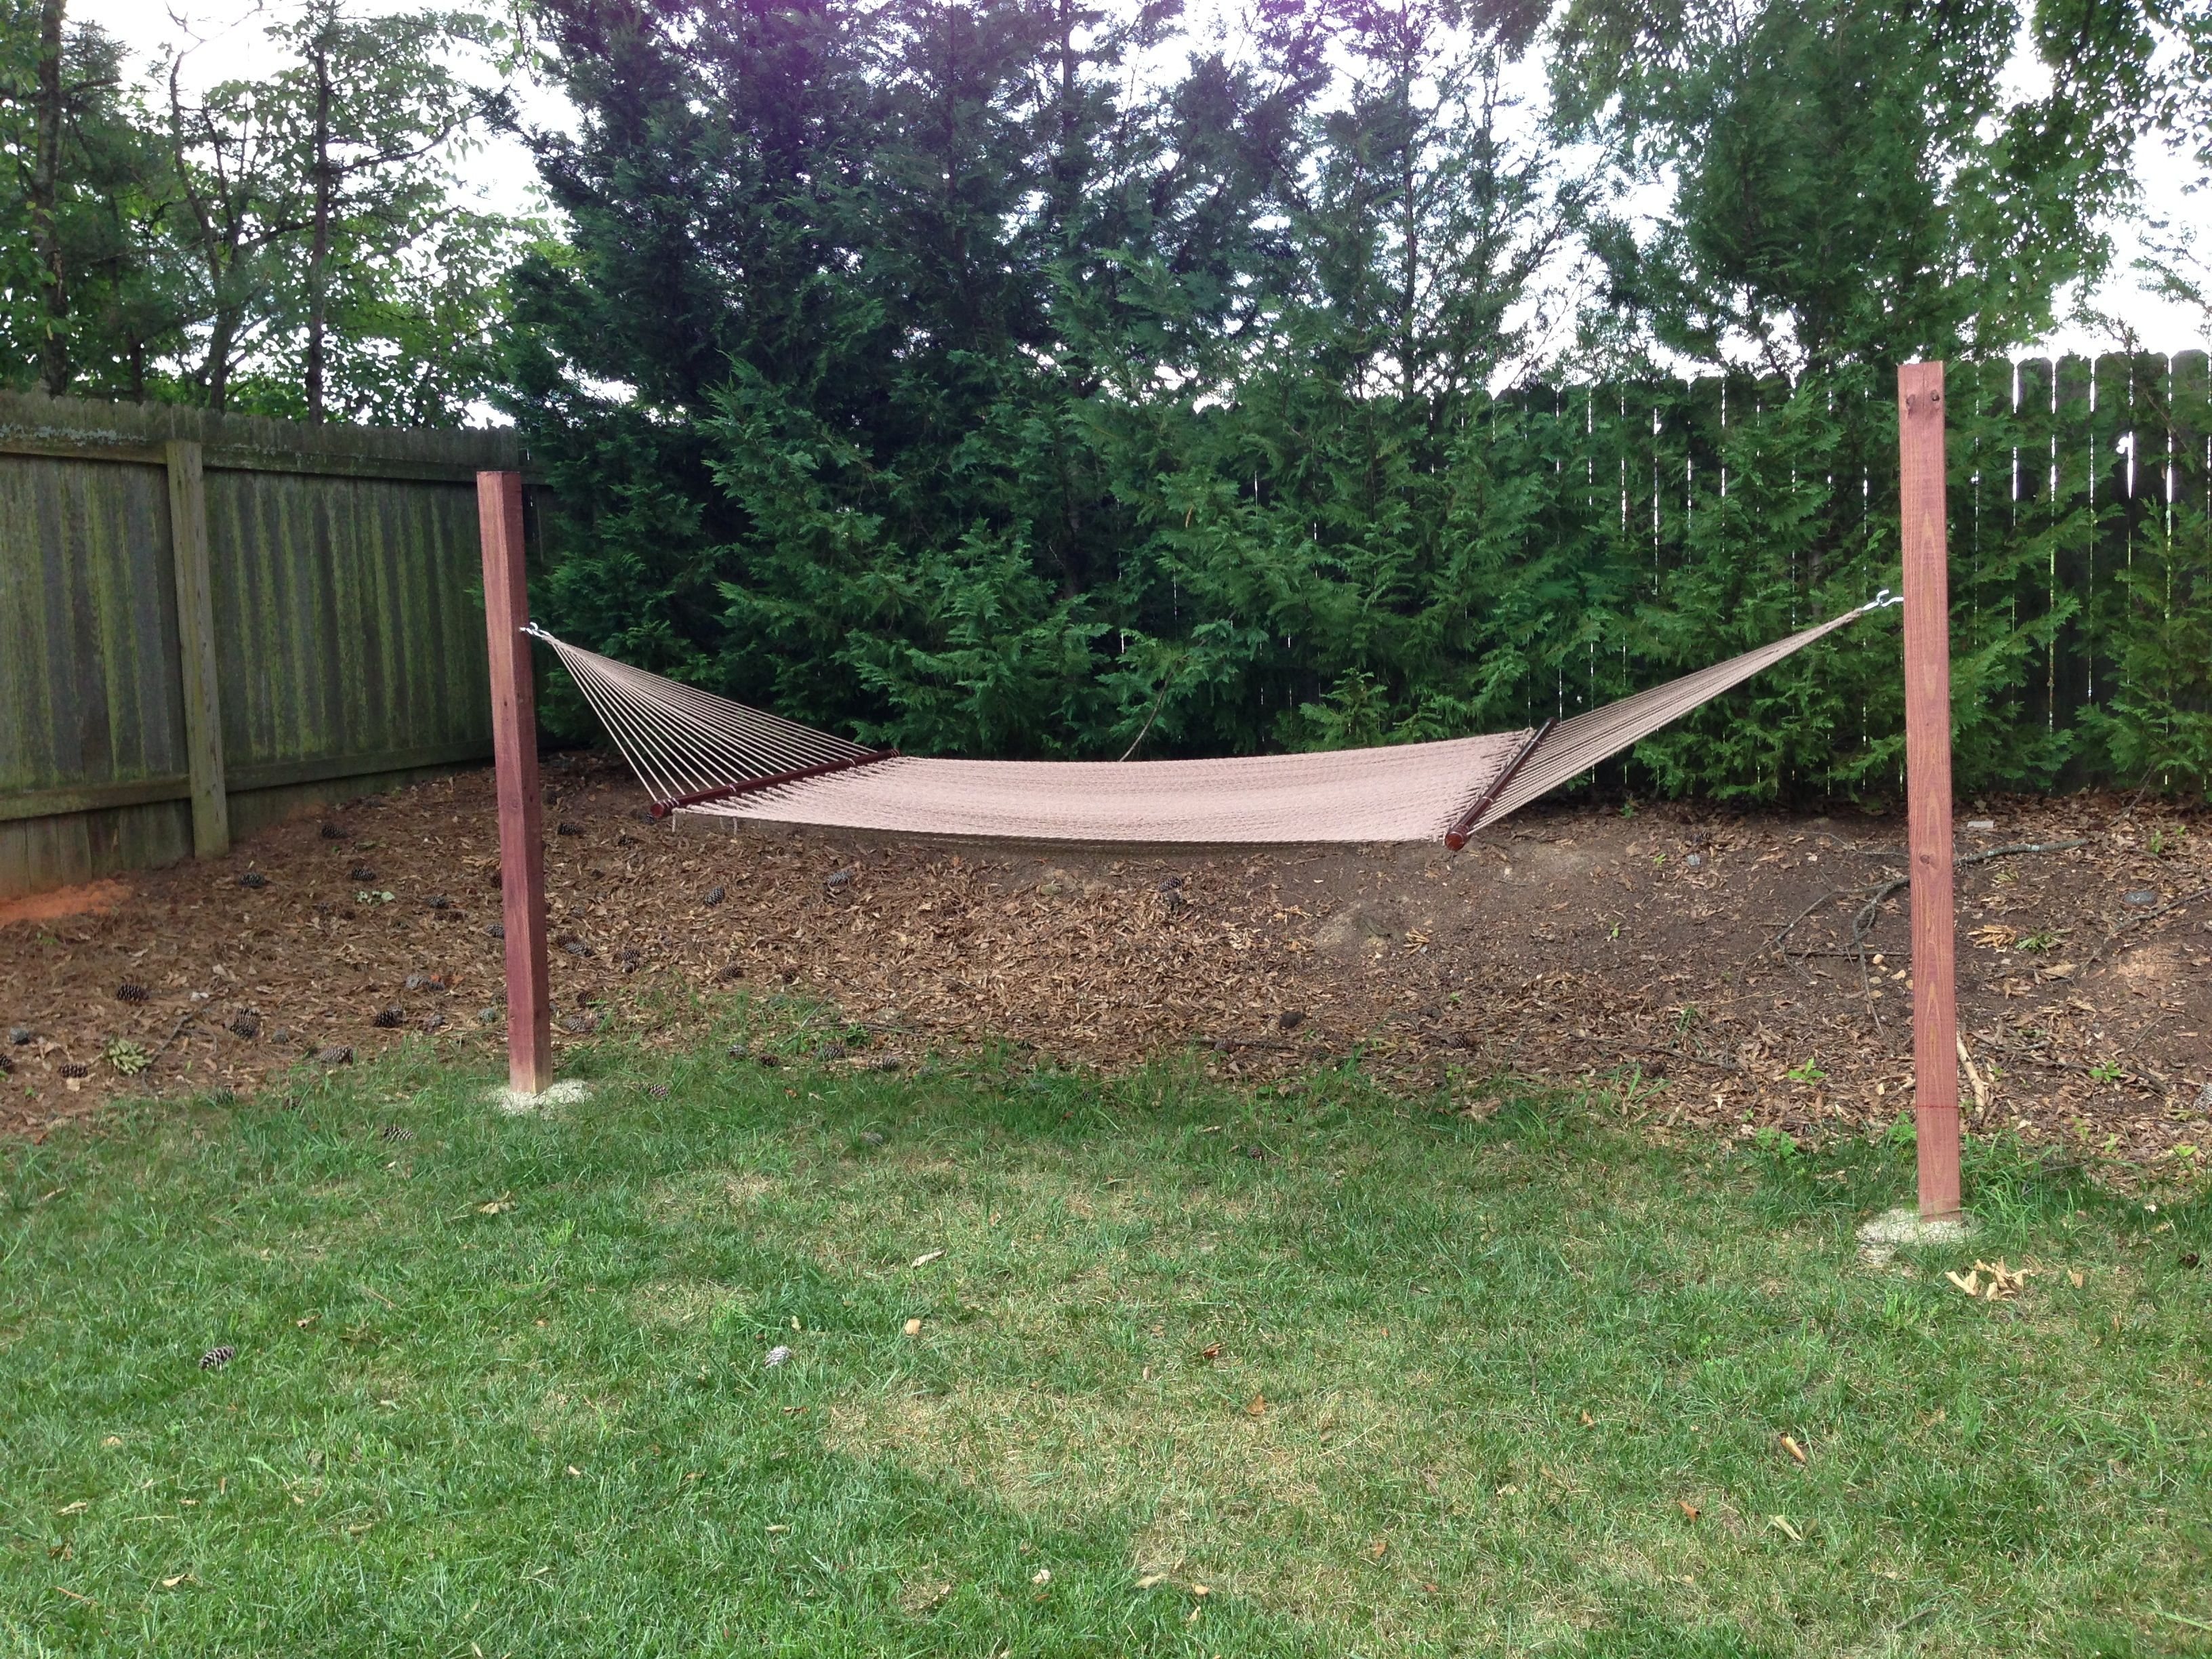 I Don T Have Trees For A Hammock And Didn T Want A Metal